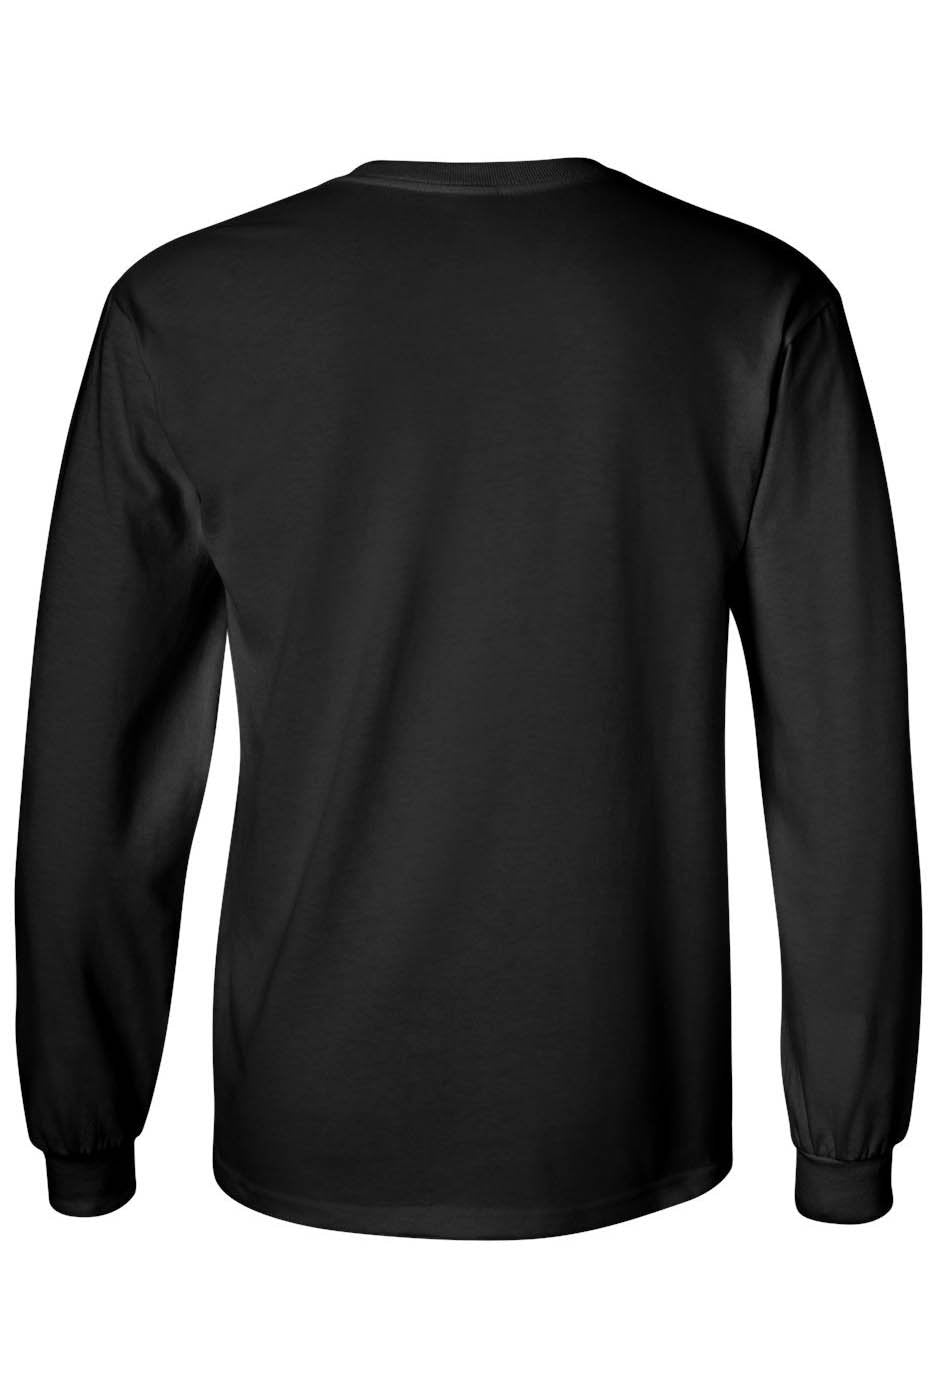 Unisex Stick Figure F*ck U Long Sleeve T-Shirt